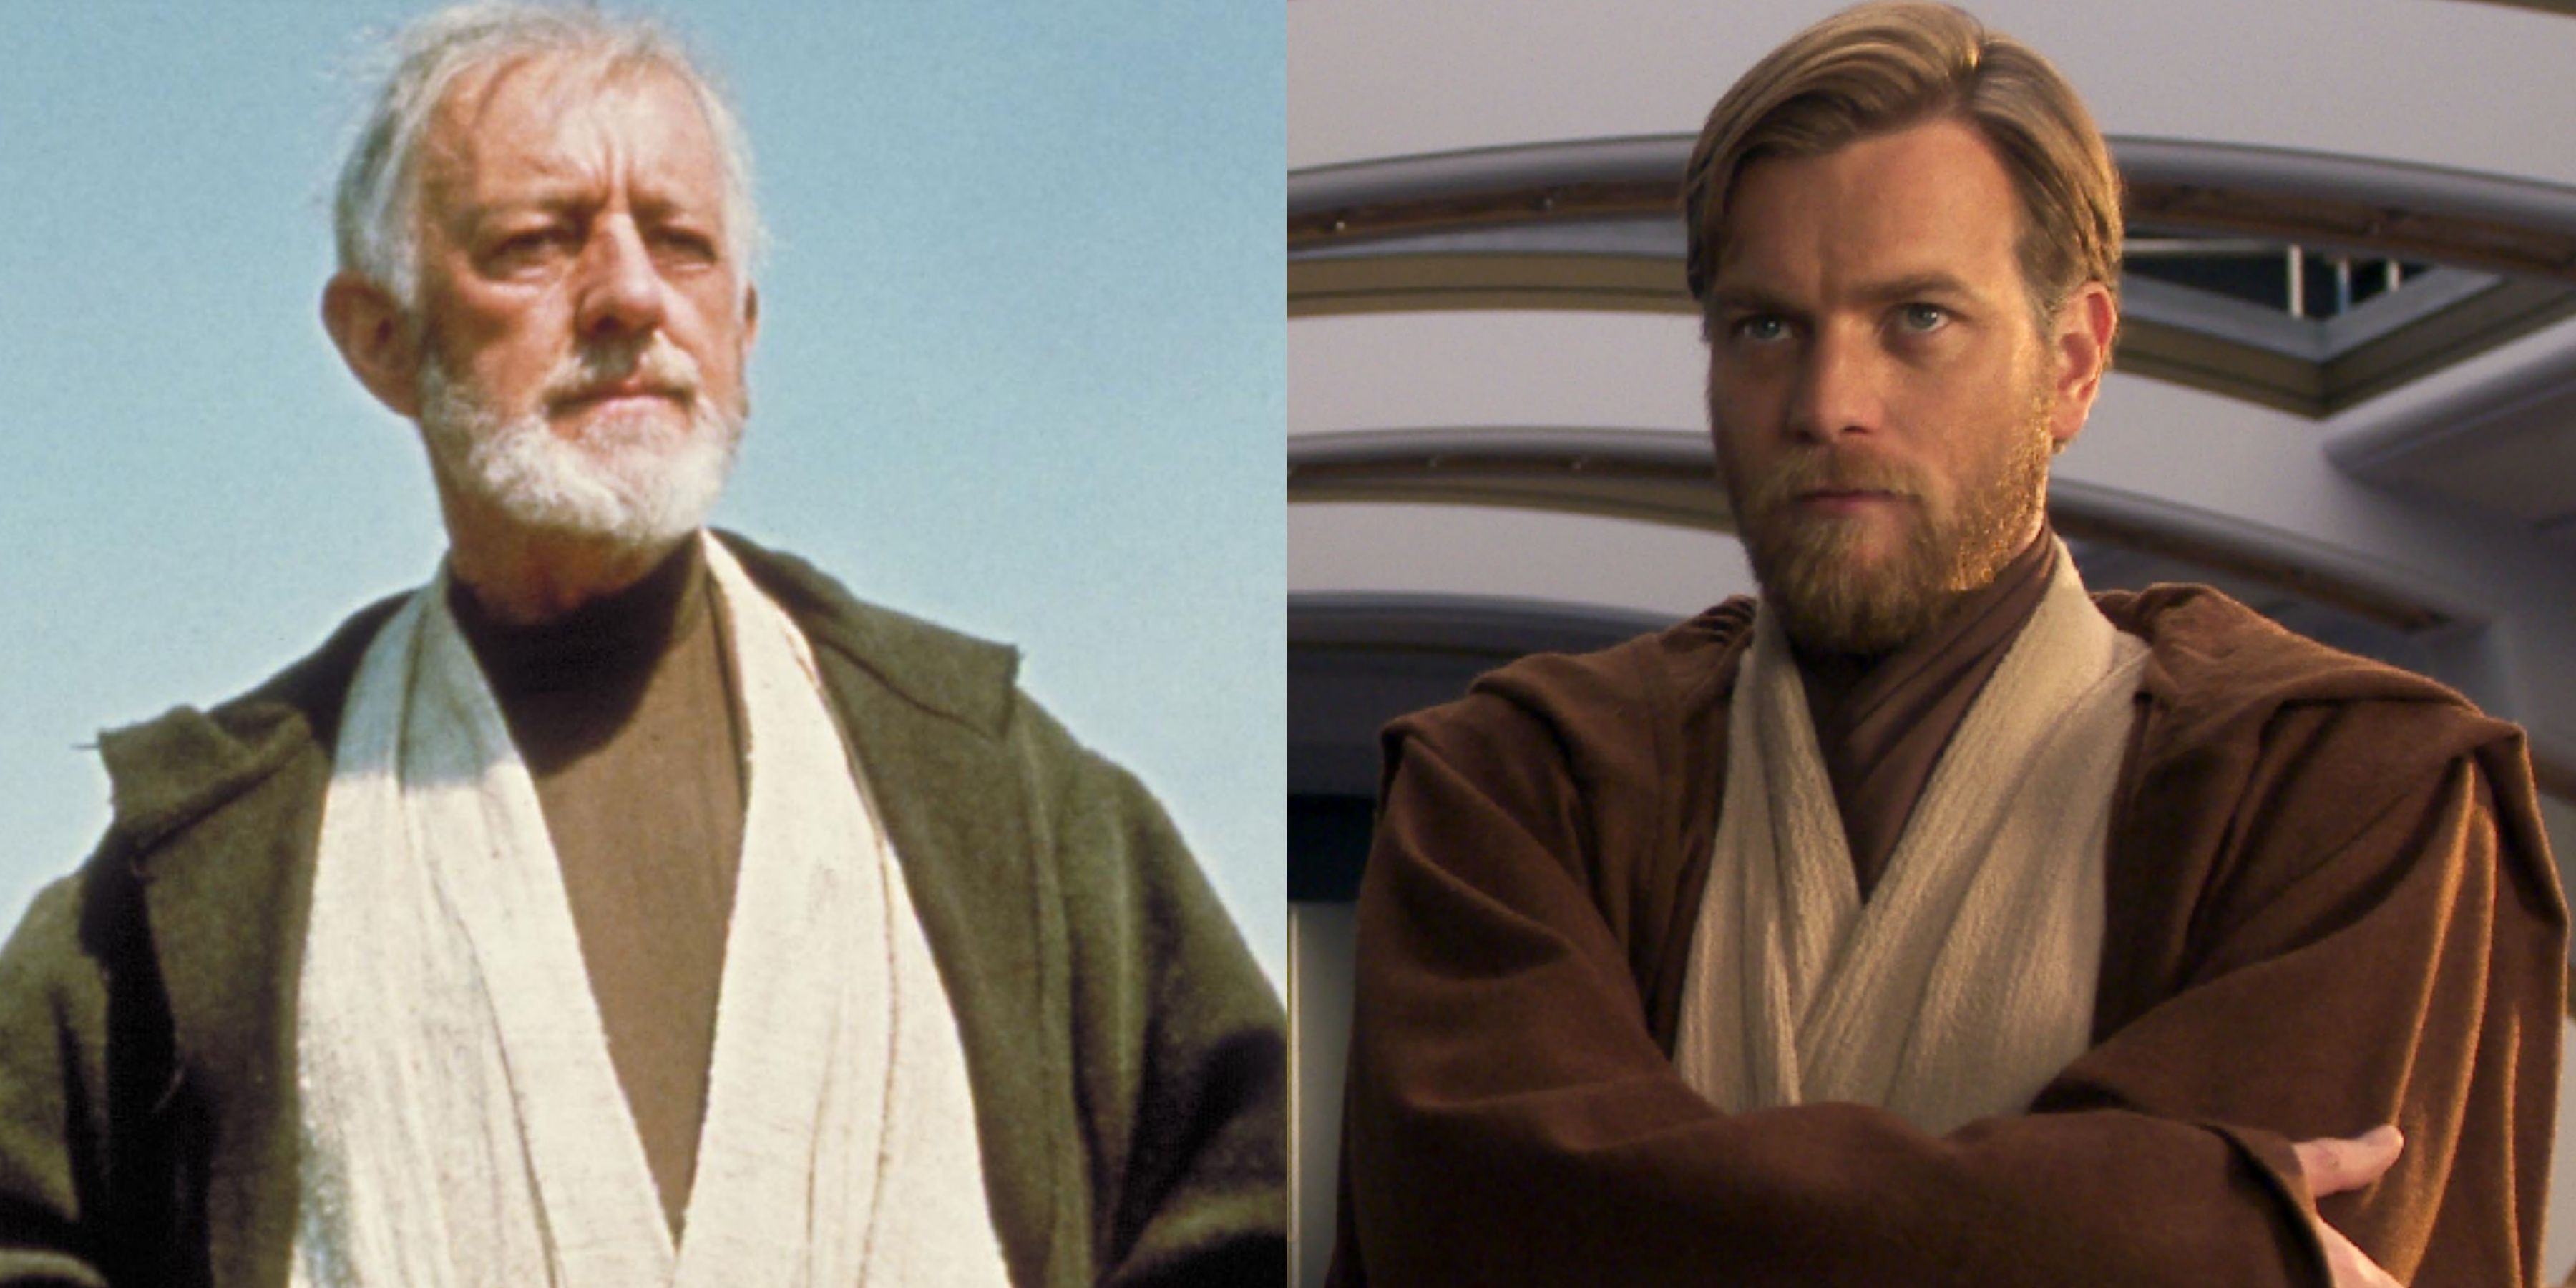 Ewan McGregor's Obi-Wan Kenobi Show Is Likely to Bring Back One of the Biggest Star Wars Villains